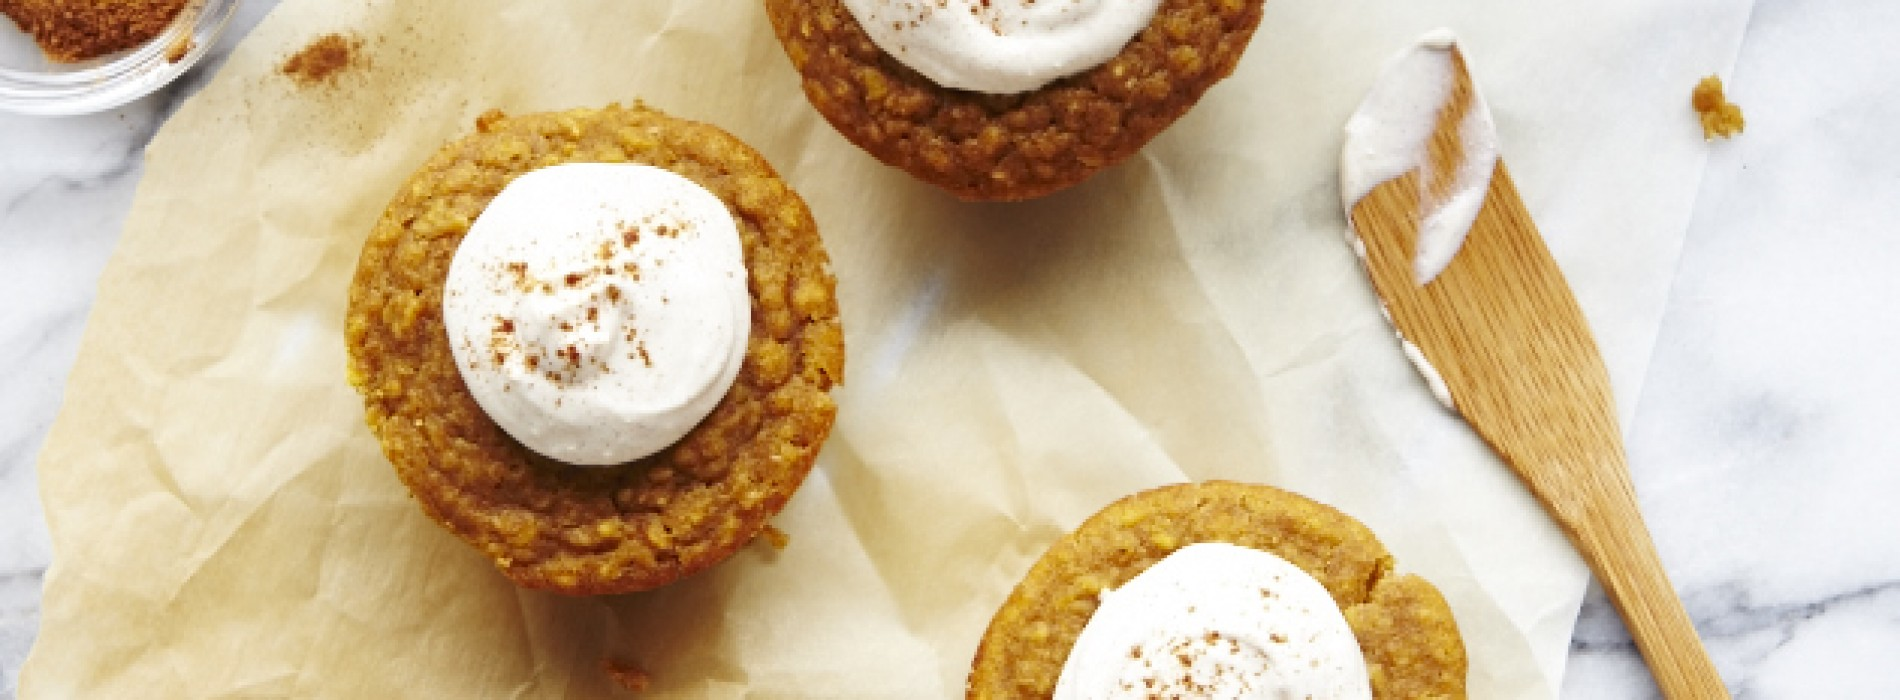 Pumpkin Oat Muffins with Spiced Cream Cheese Spread